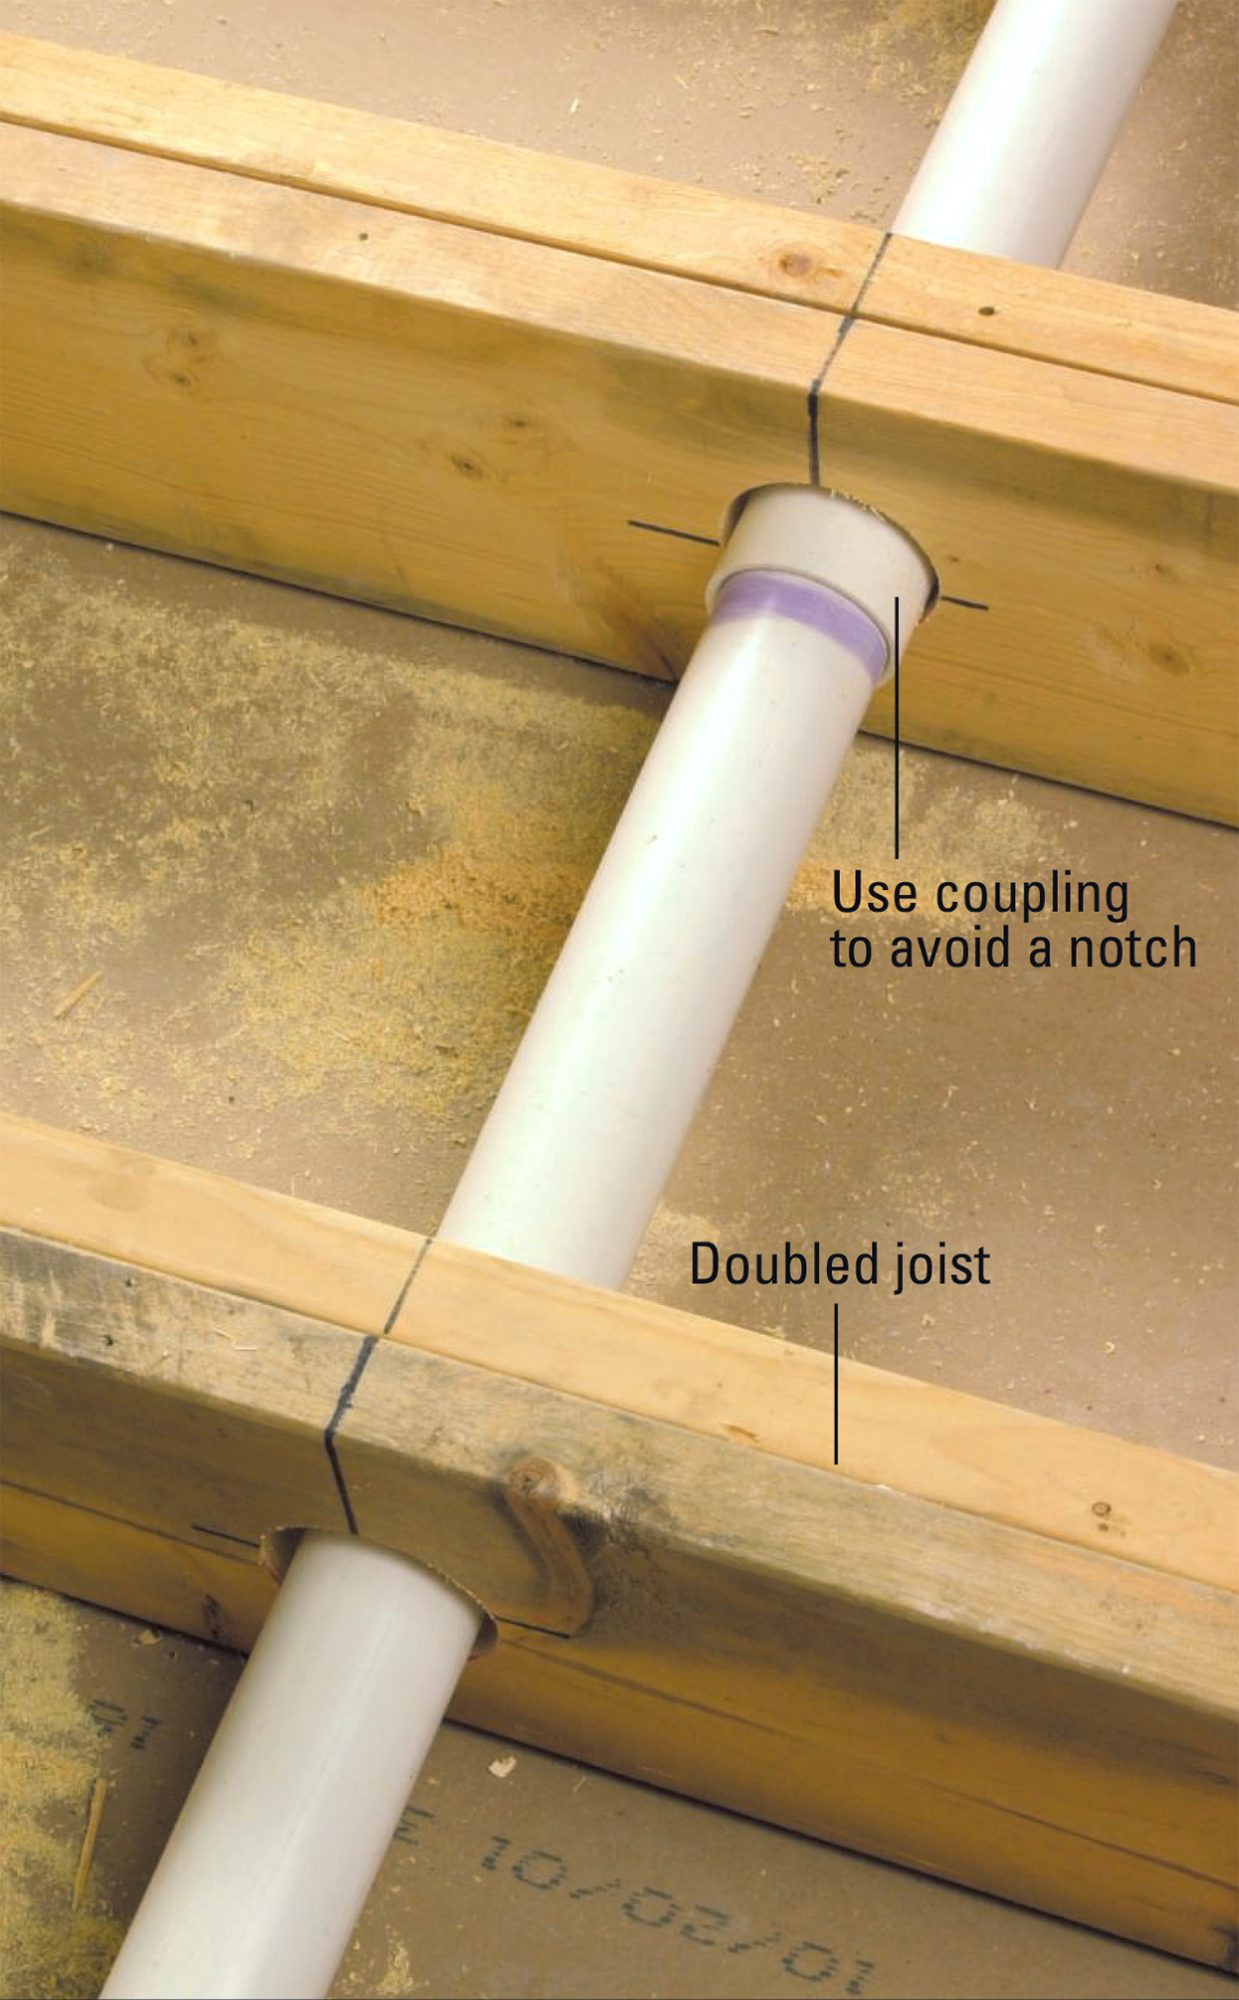 drainpipe through bored holes in doubled joists